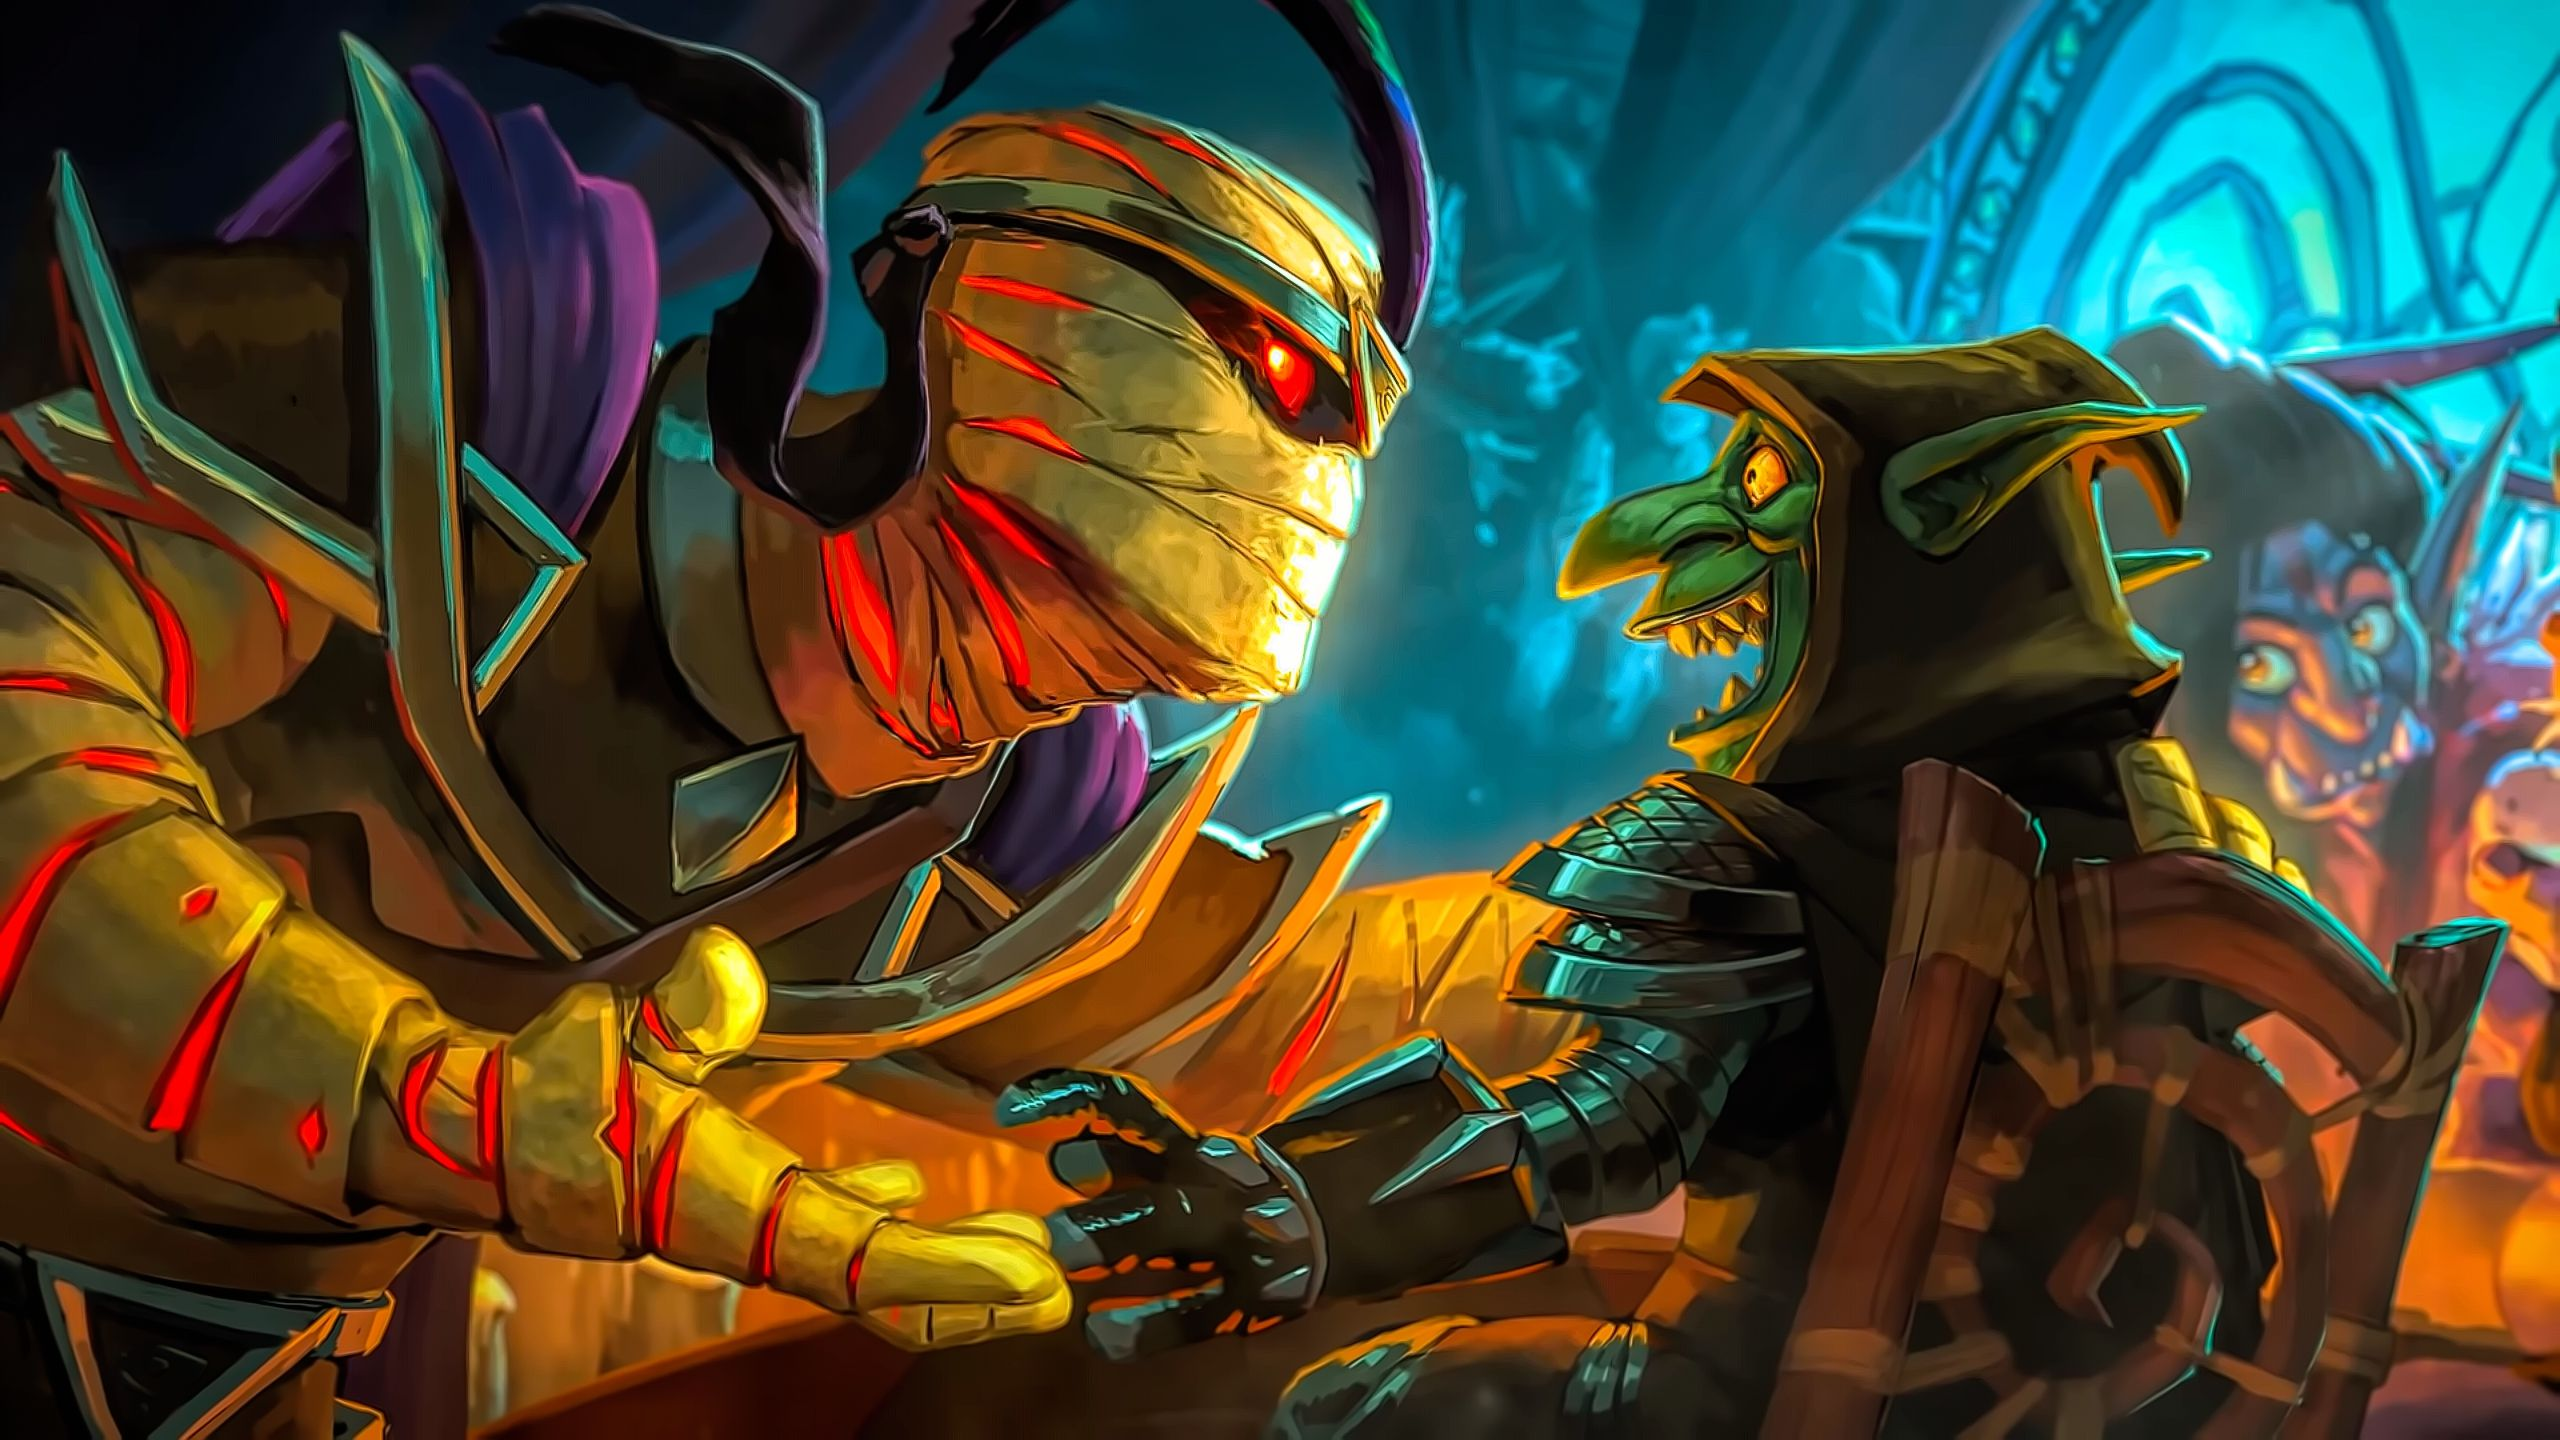 Hearthstone all rise of shadows cards revealed so far